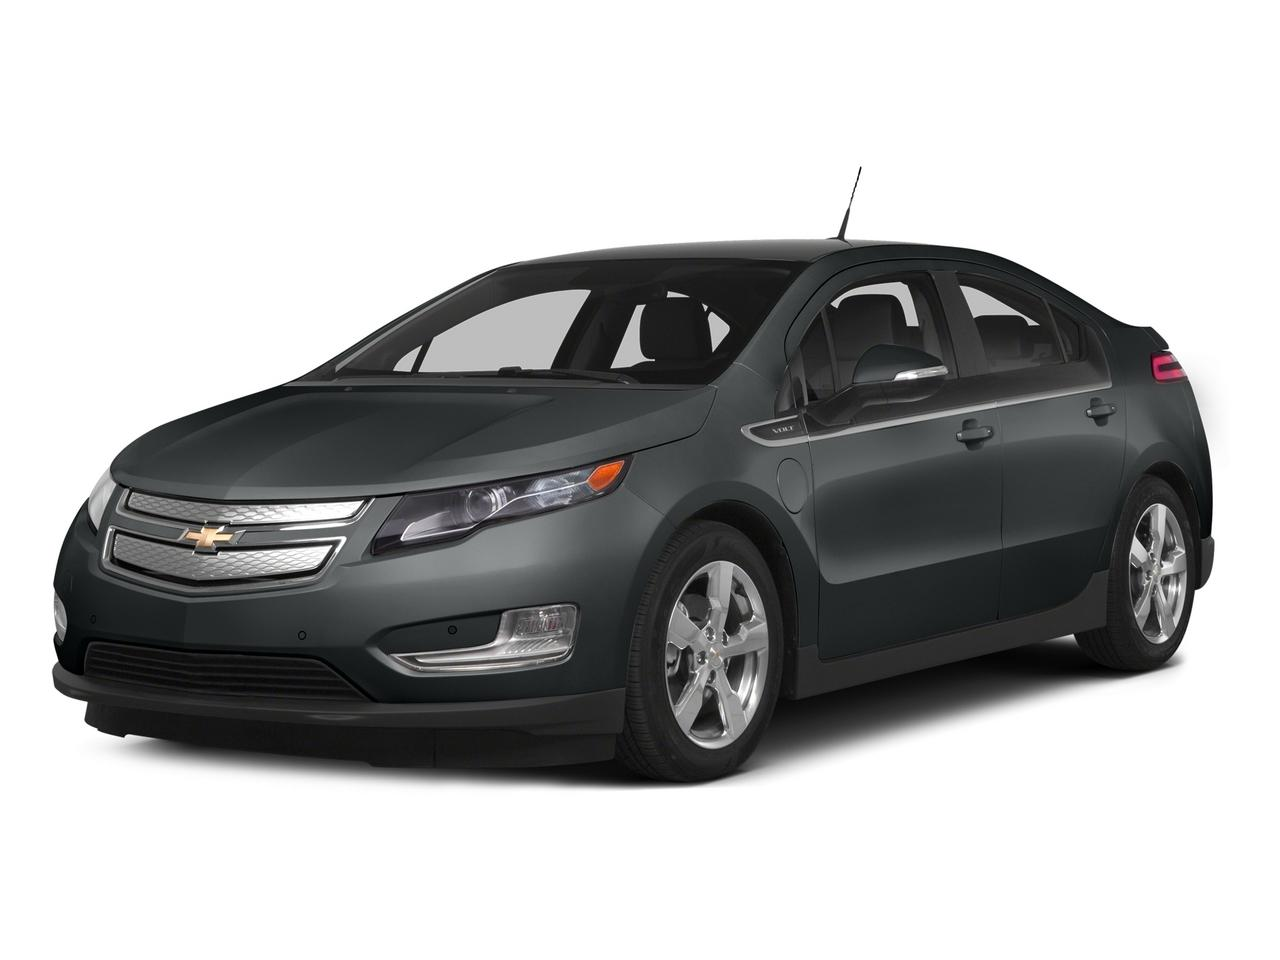 2015 Chevrolet Volt Vehicle Photo in La Mesa, CA 91942